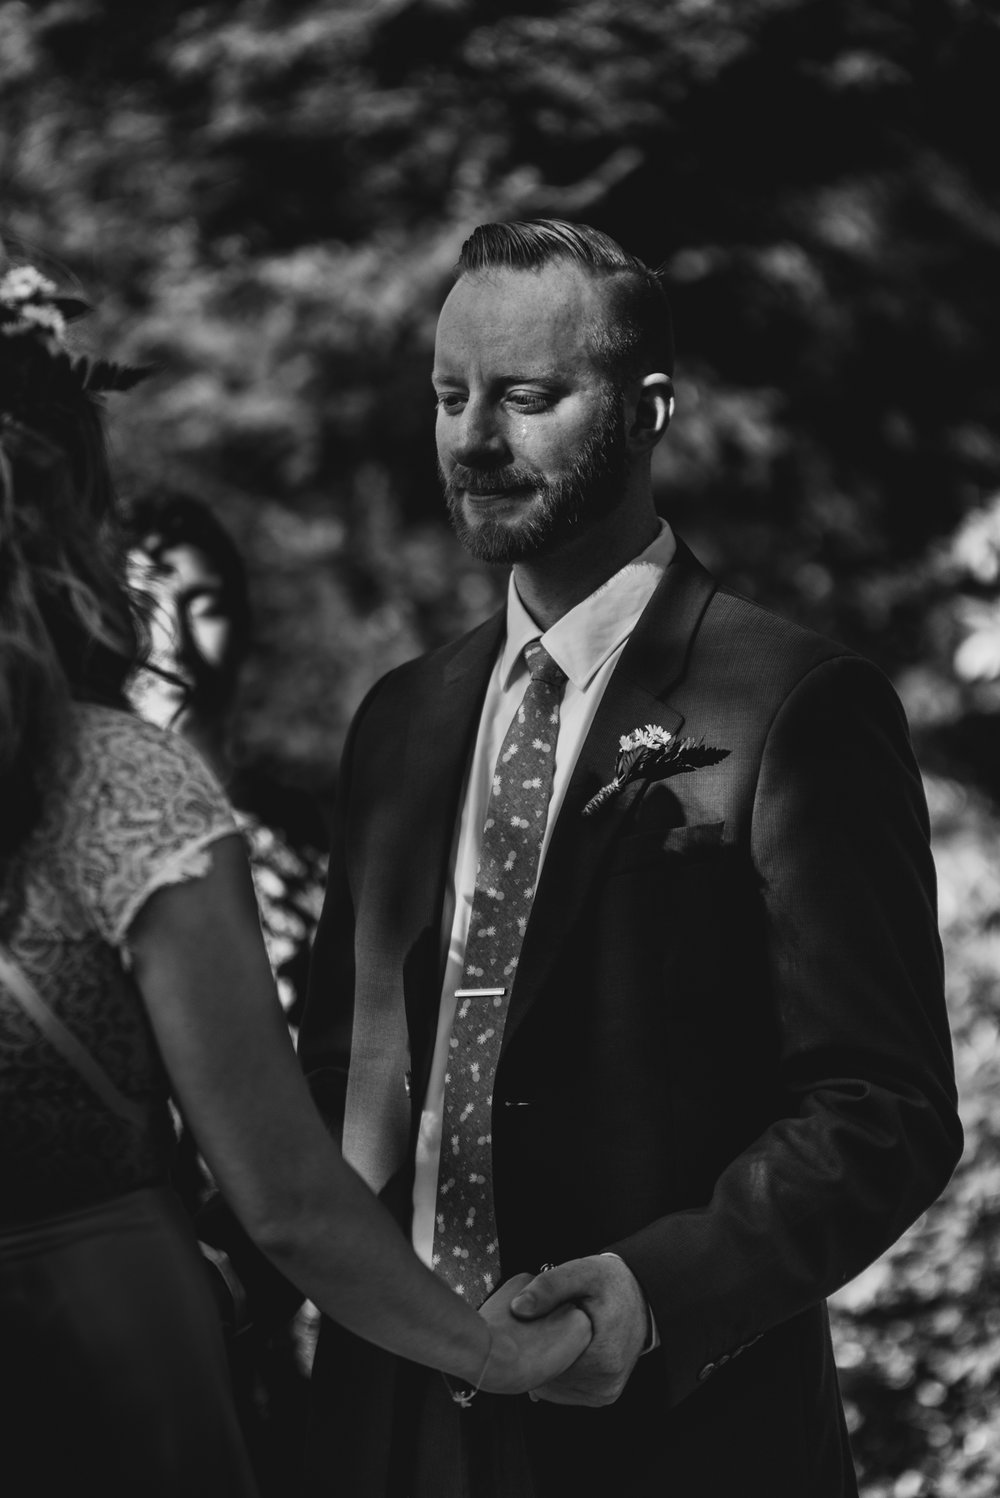 Summer Camp Wedding Photography June 2017 Massachusetts Berkshires Outdoor Wedding Photography Novella Photography Matt and Paulette Griswold (94).jpg